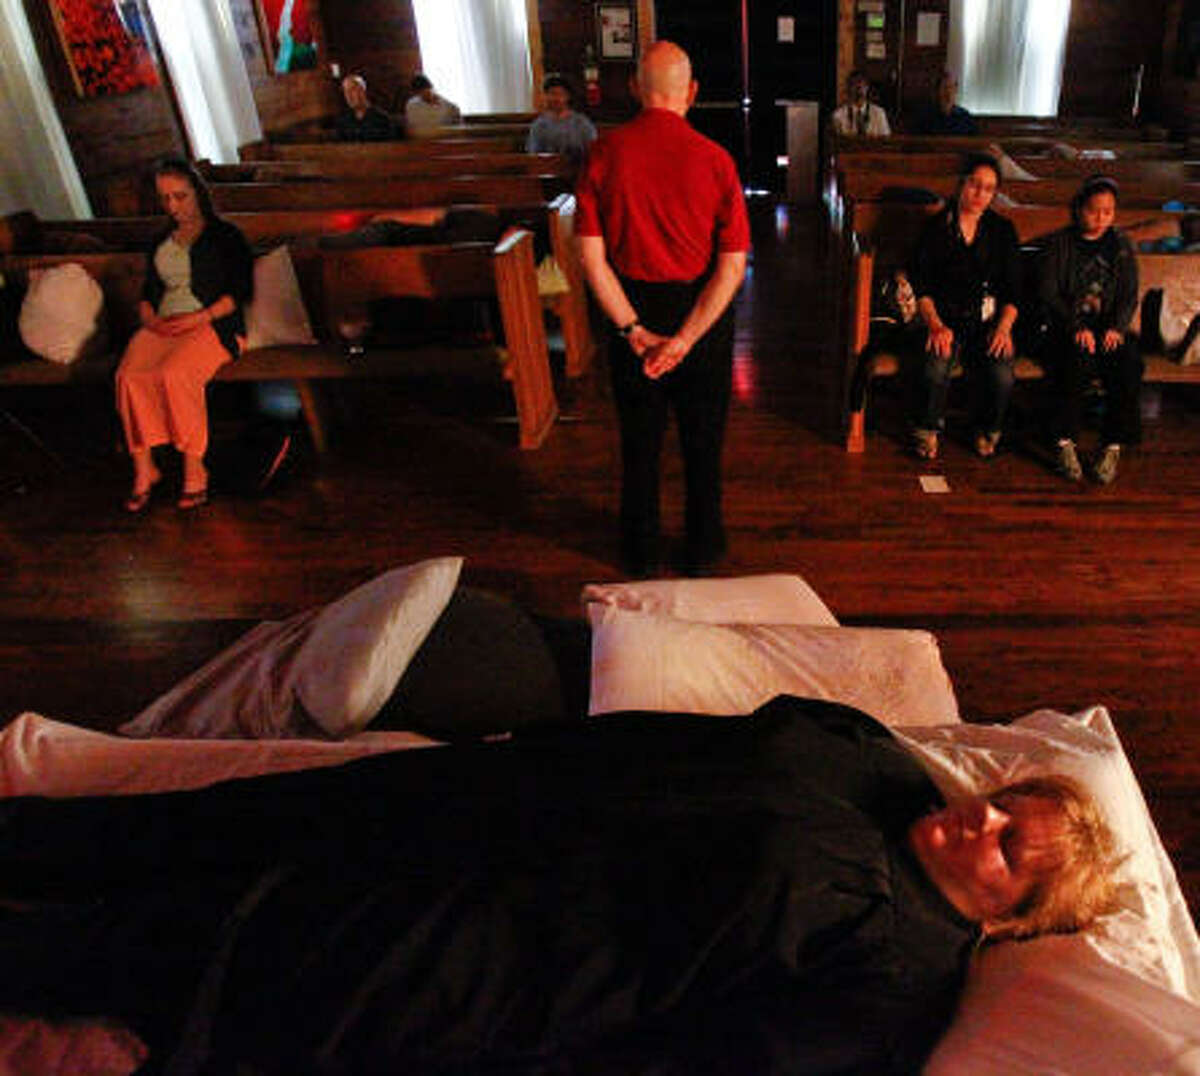 Performance artist Emily Sloan, front, relaxes on Sunday with other participants at 14 Pews in the Heights during the first Southern Naptist Convention, Stan Merrill of The Jung Center of Houston, standing, leads in meditation sequence.